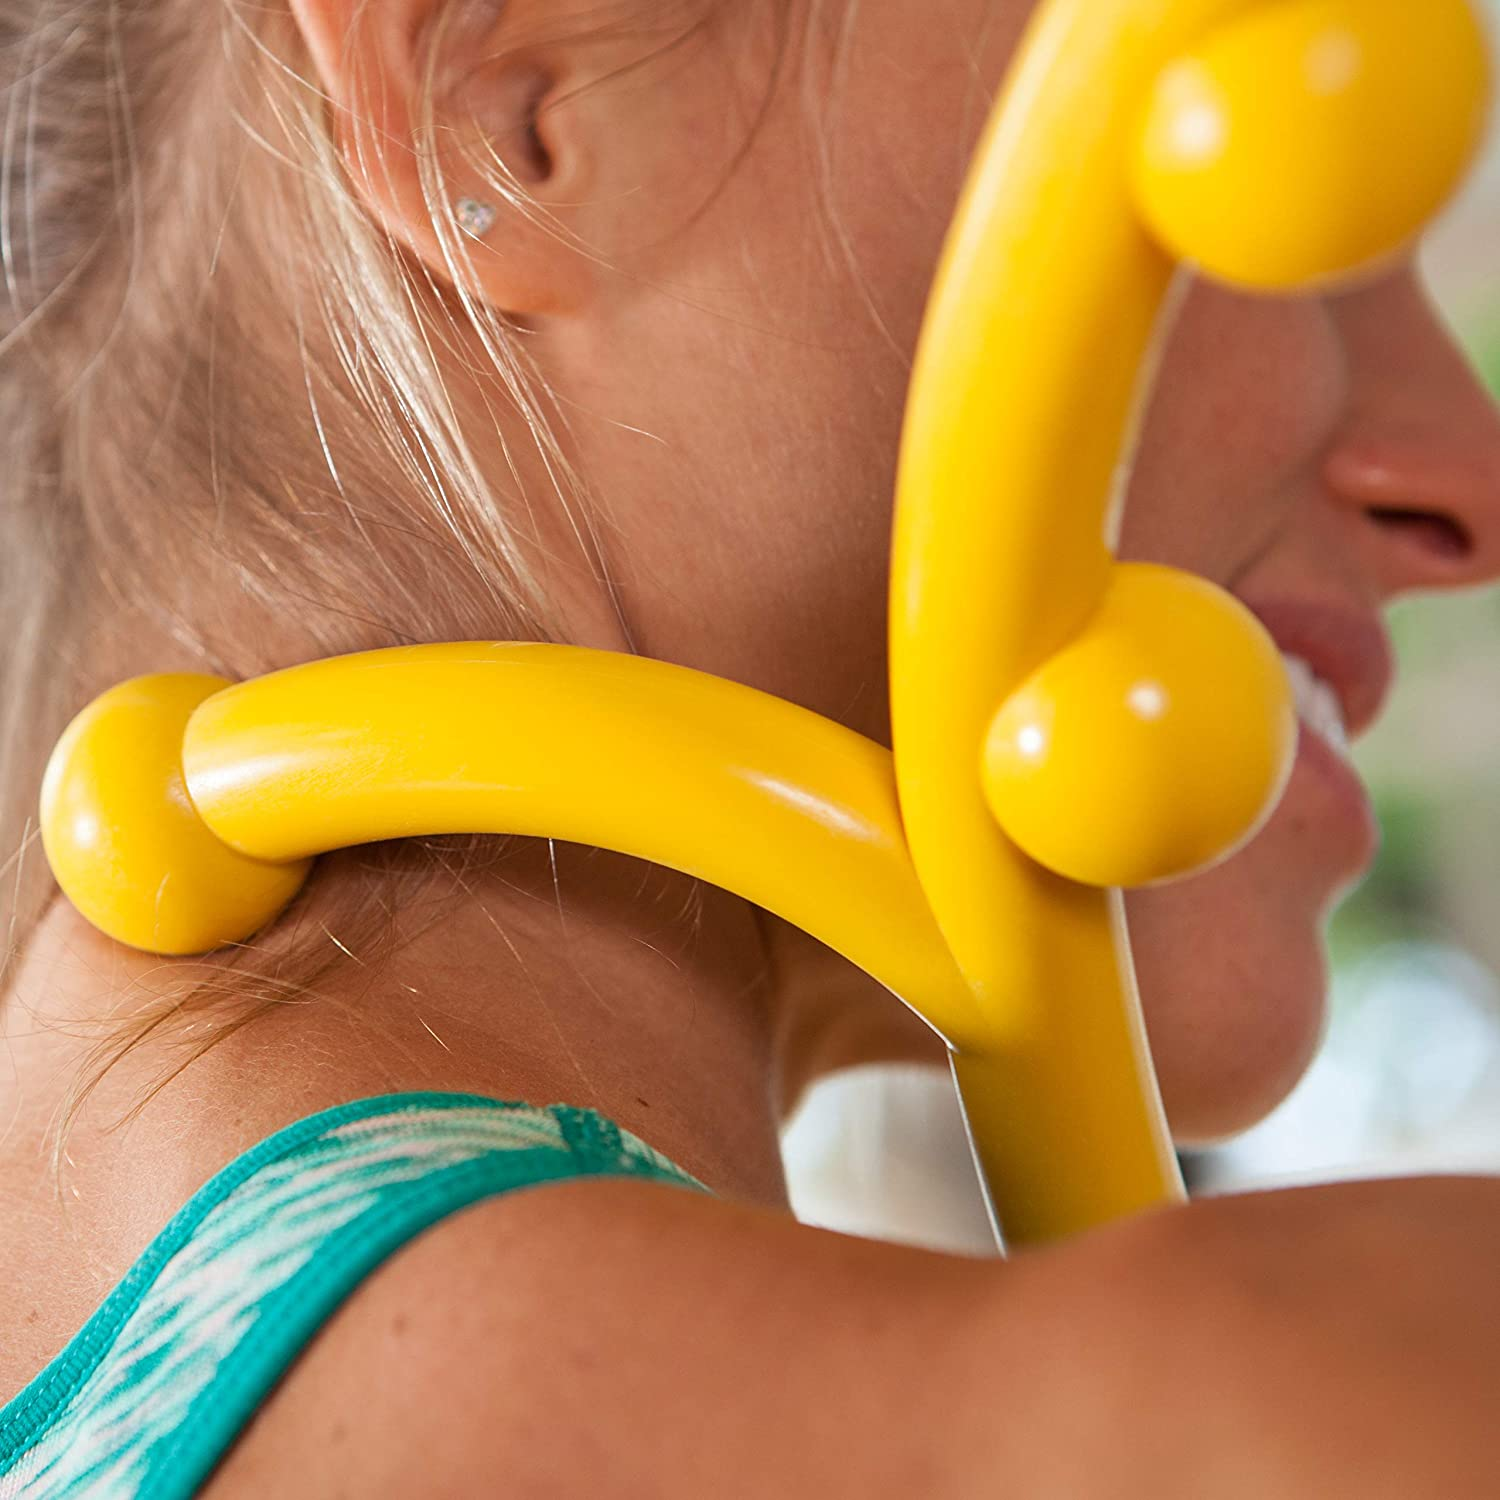 The Personal Massage Hook 2